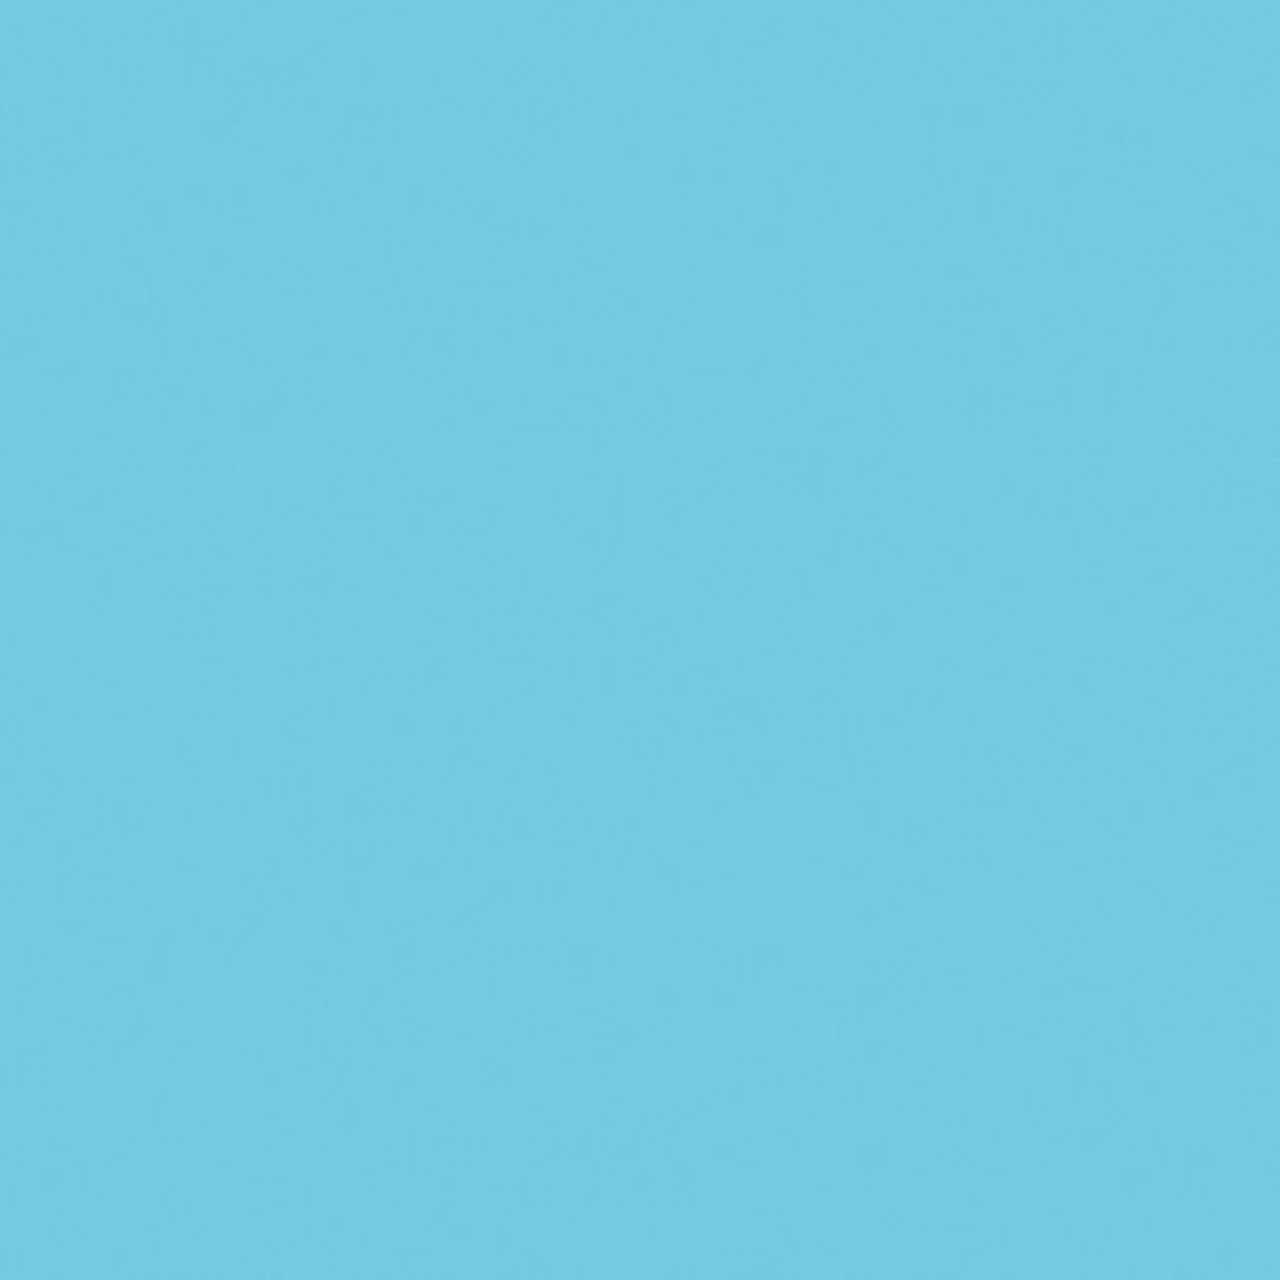 #0066 Rosco Gels Roscolux Cool Blue, 20x24""